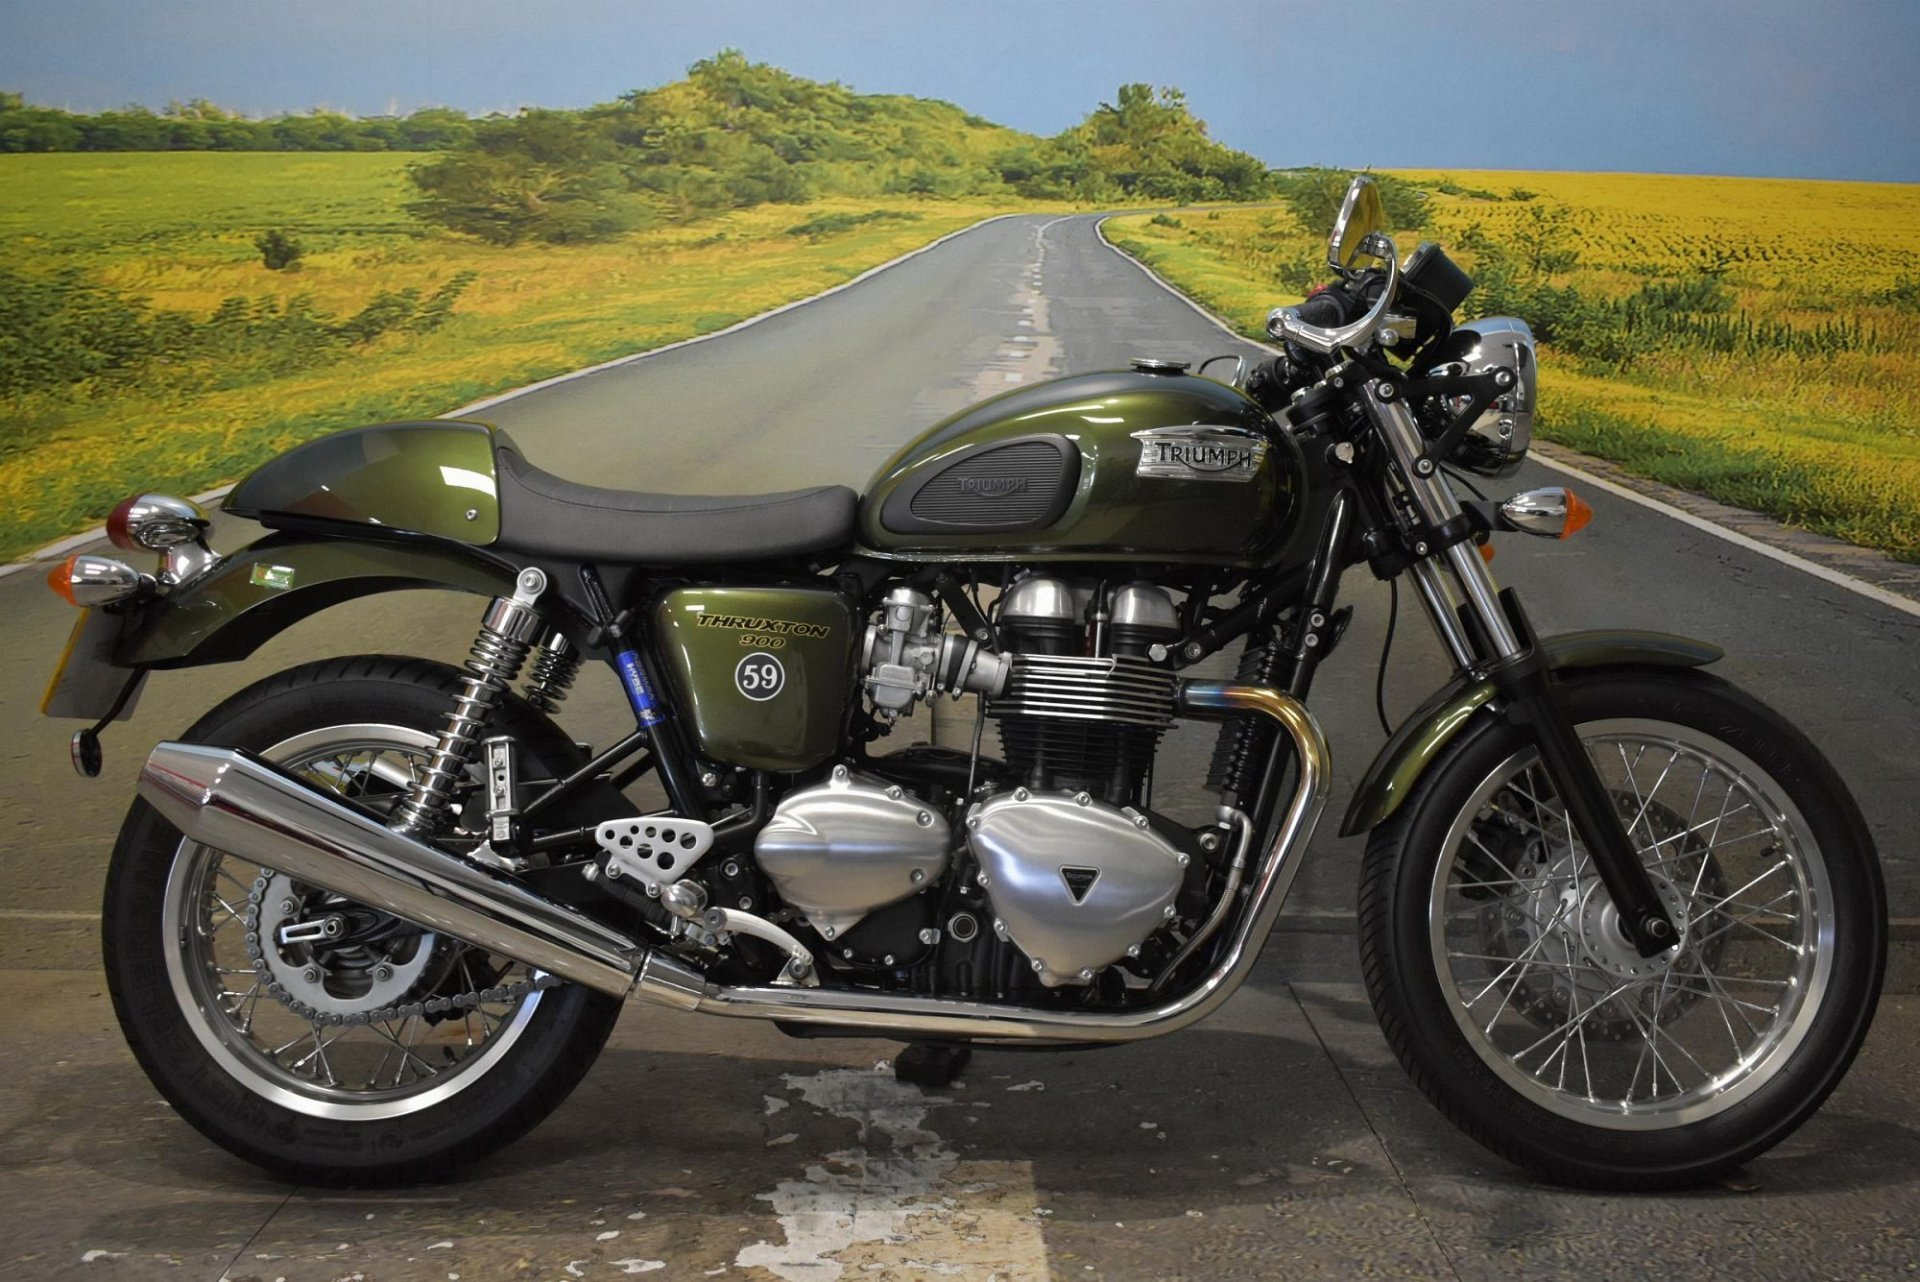 2014 Triumph Thruxton for sale in Derbyshire